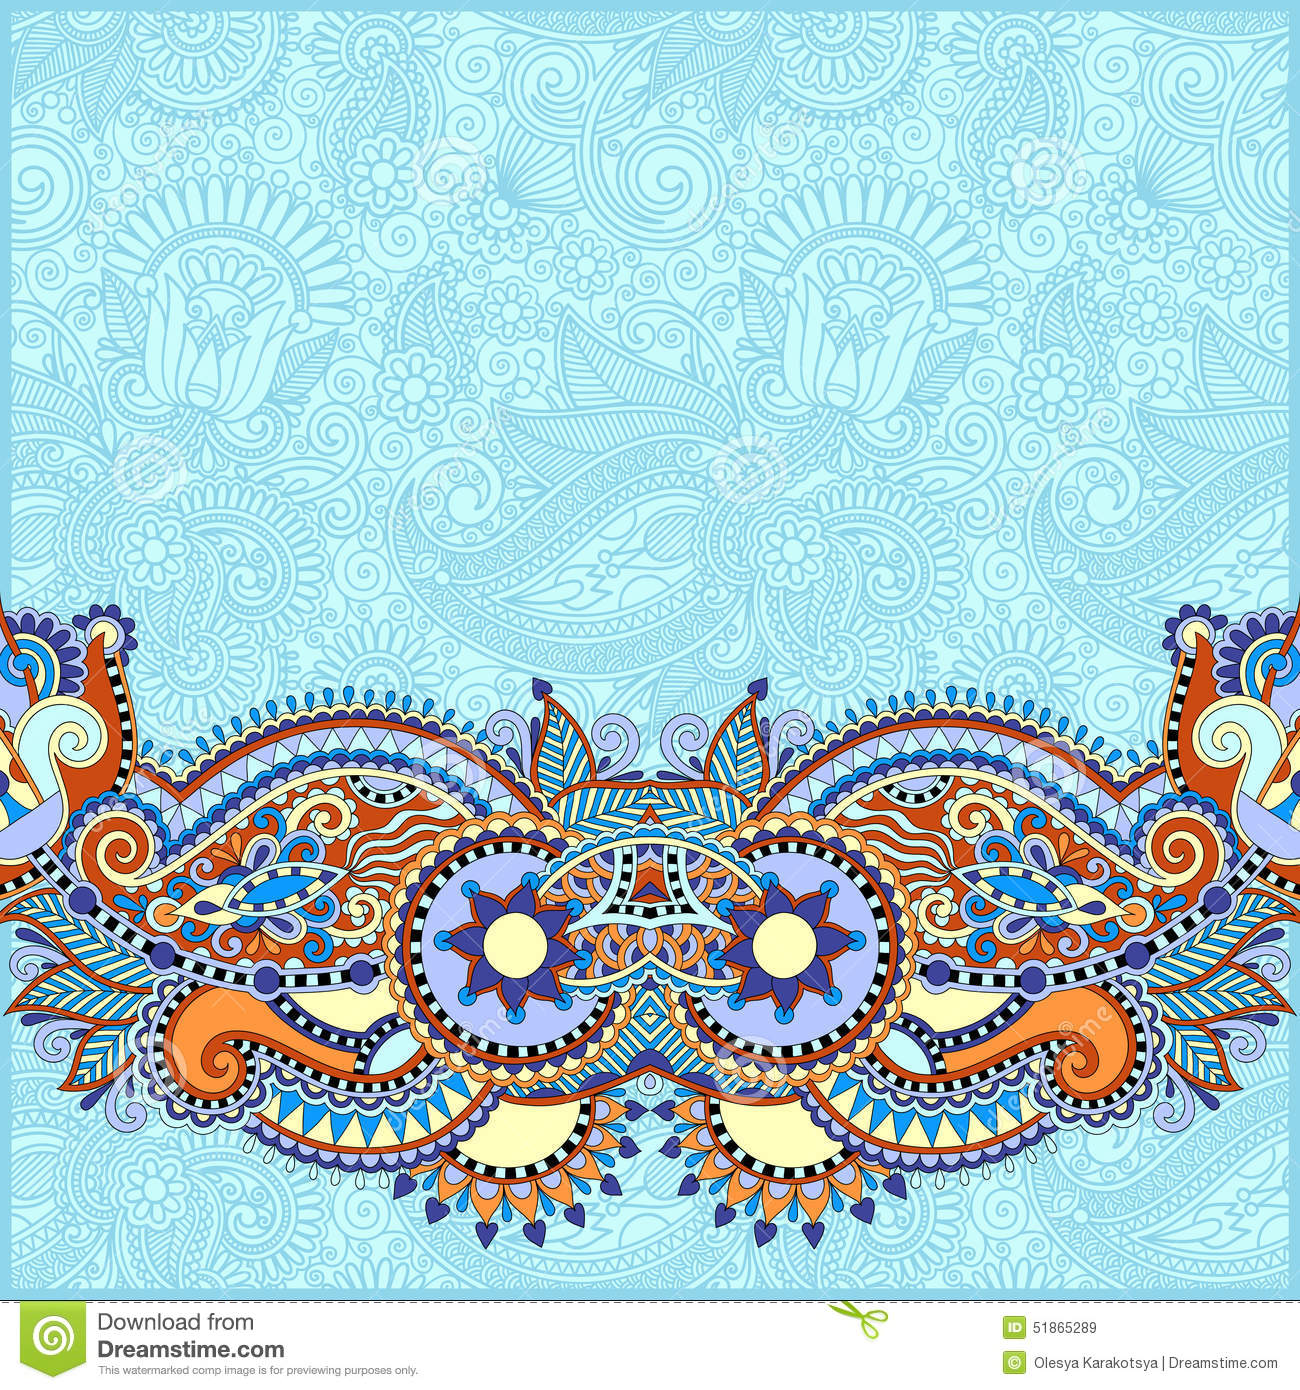 Paisley Design On Decorative Floral Background For Stock Vector